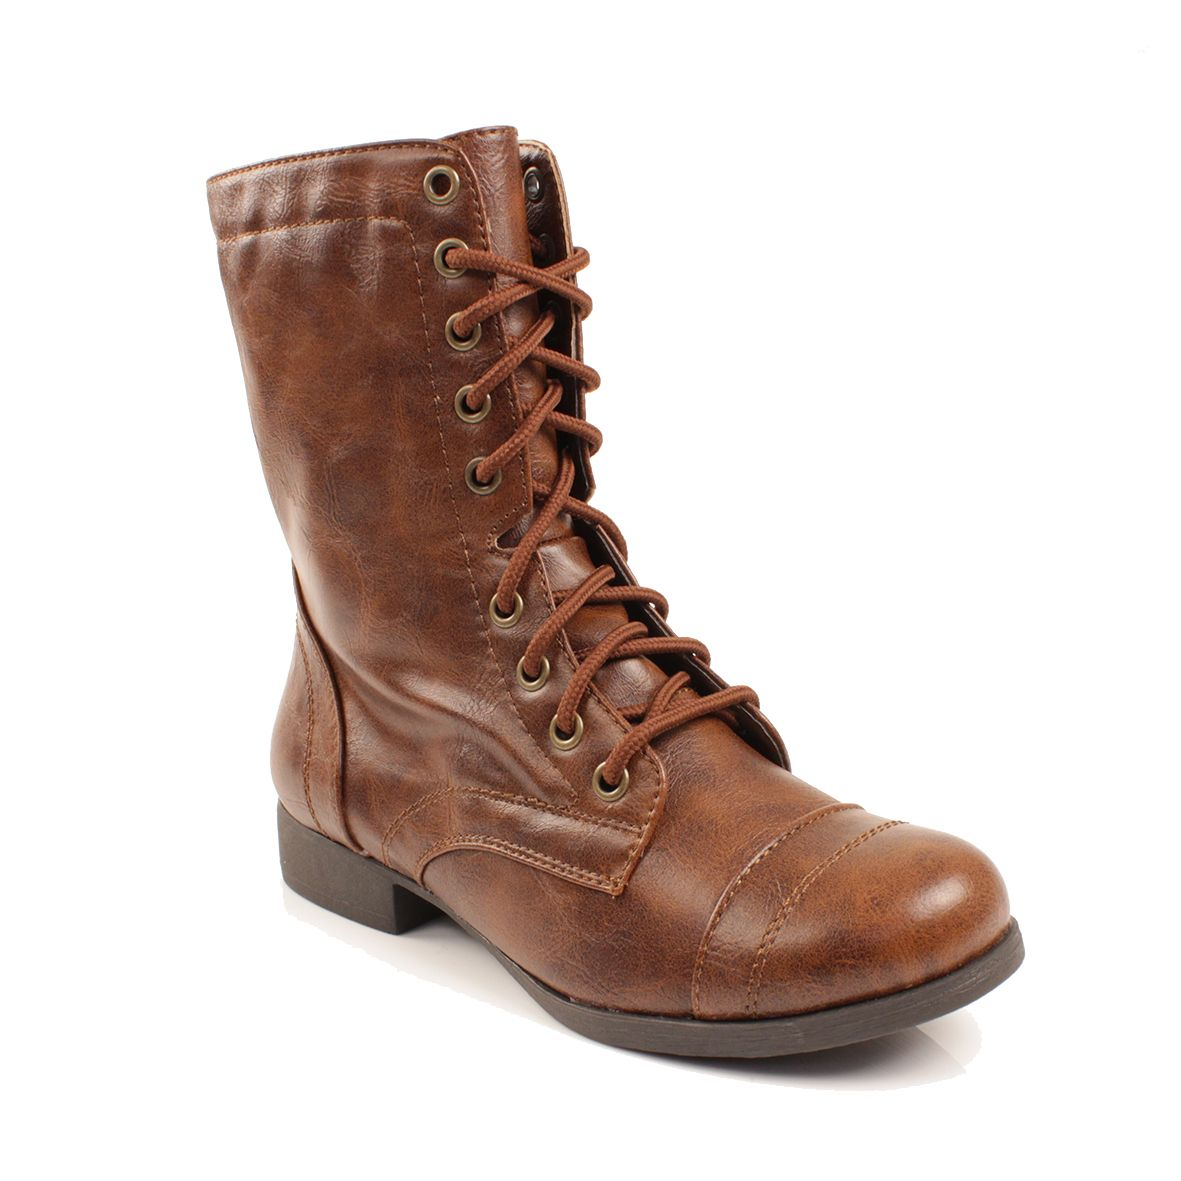 BRASH | Boots, Lace up boots, Payless shoes